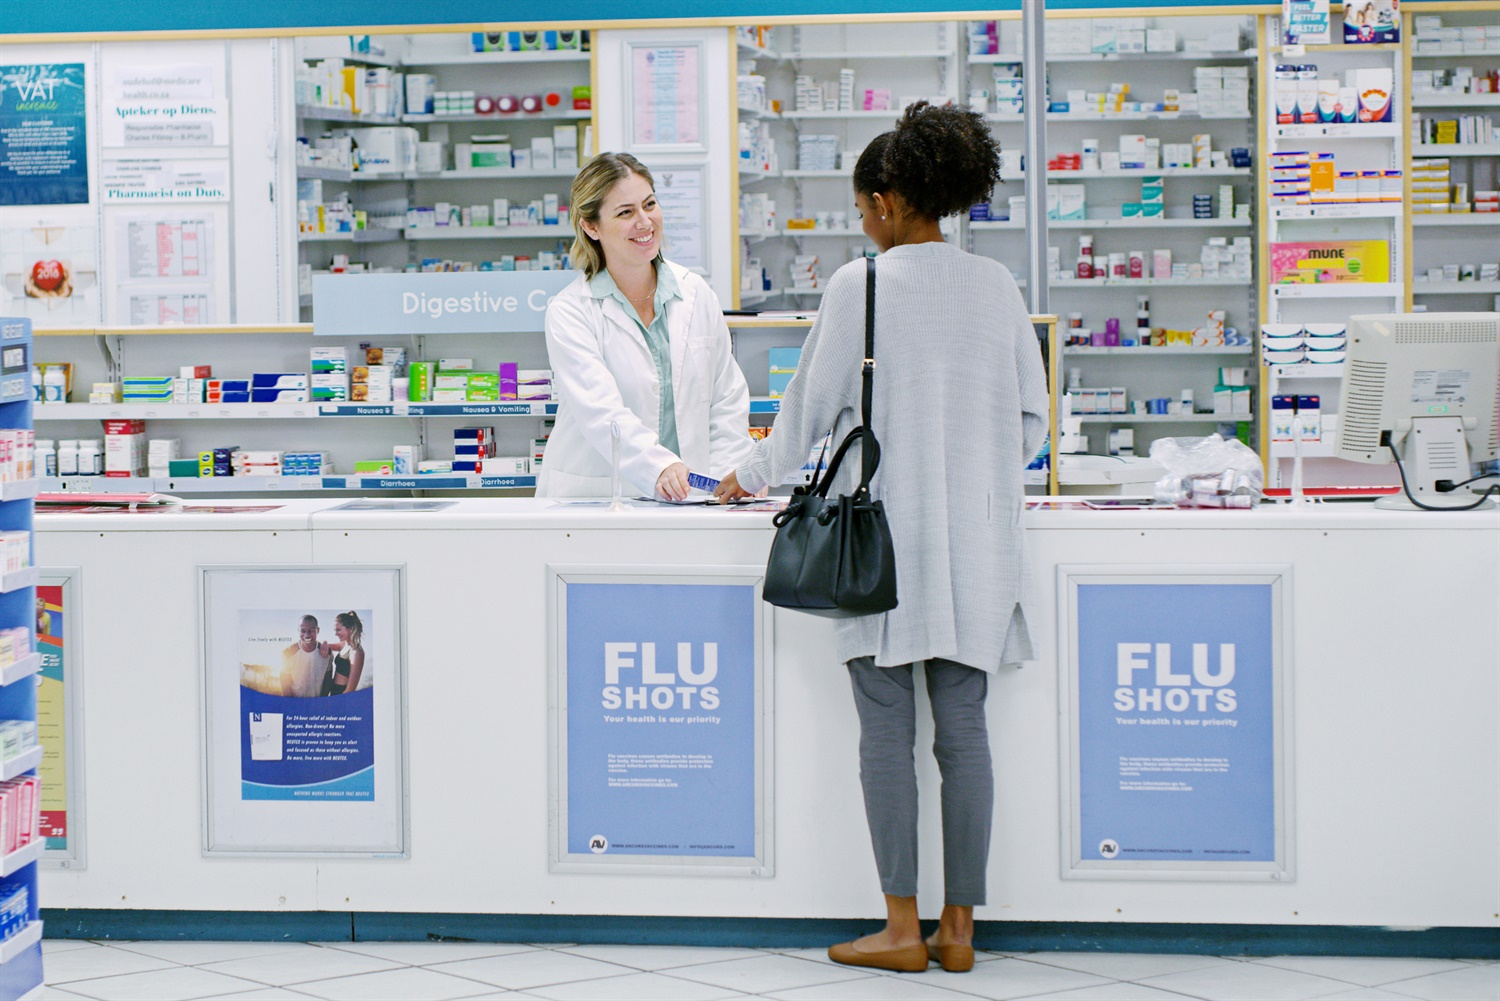 GPhC to begin publishing pharmacy inspections reports publicly